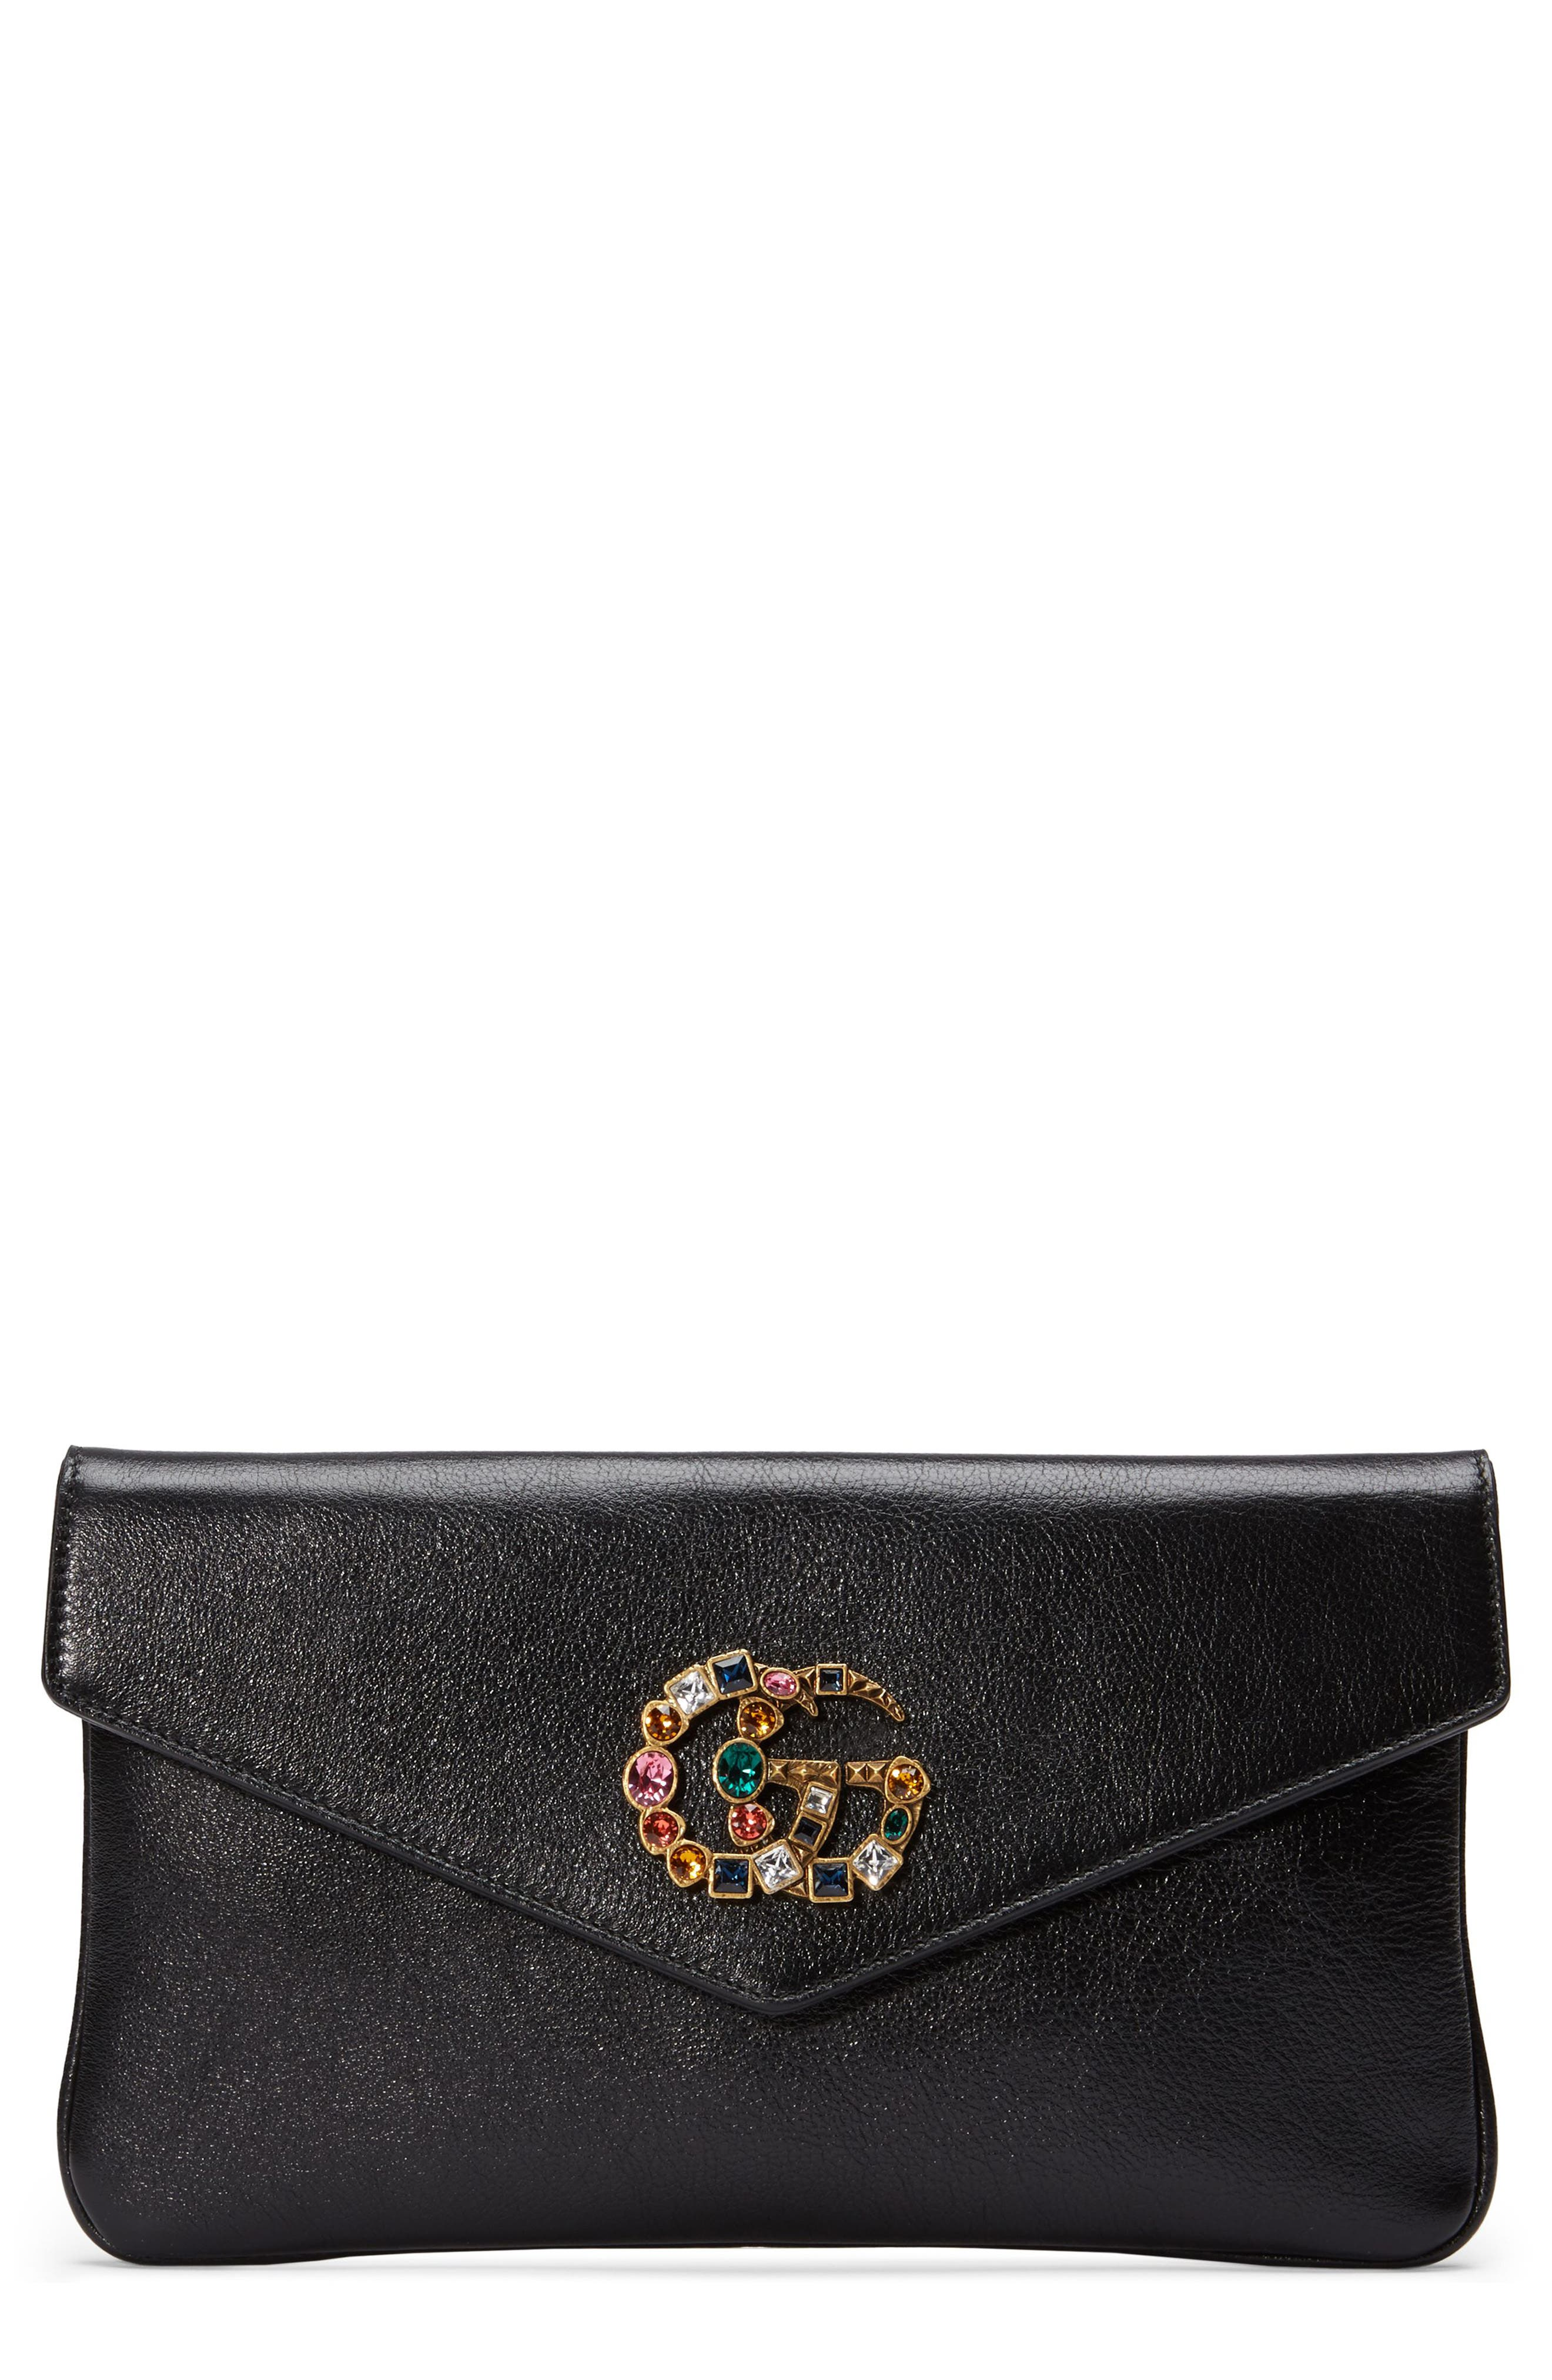 Broadway Crystal GG Leather Envelope Clutch,                             Main thumbnail 1, color,                             Nero Multi